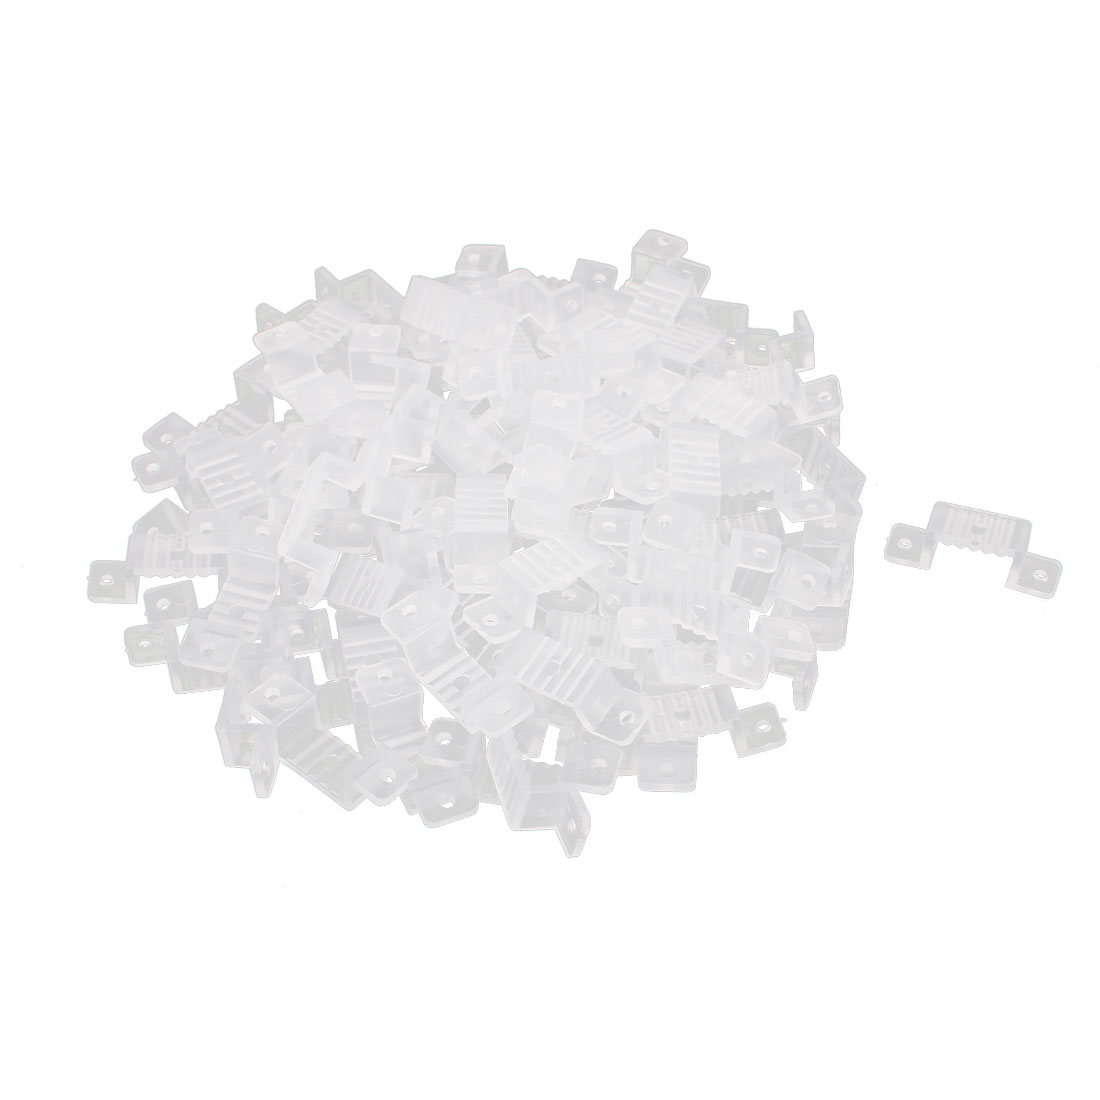 18mm x 8mm Plastic LED Light Strip Fixing Mounting Bracket Clear 100pcs